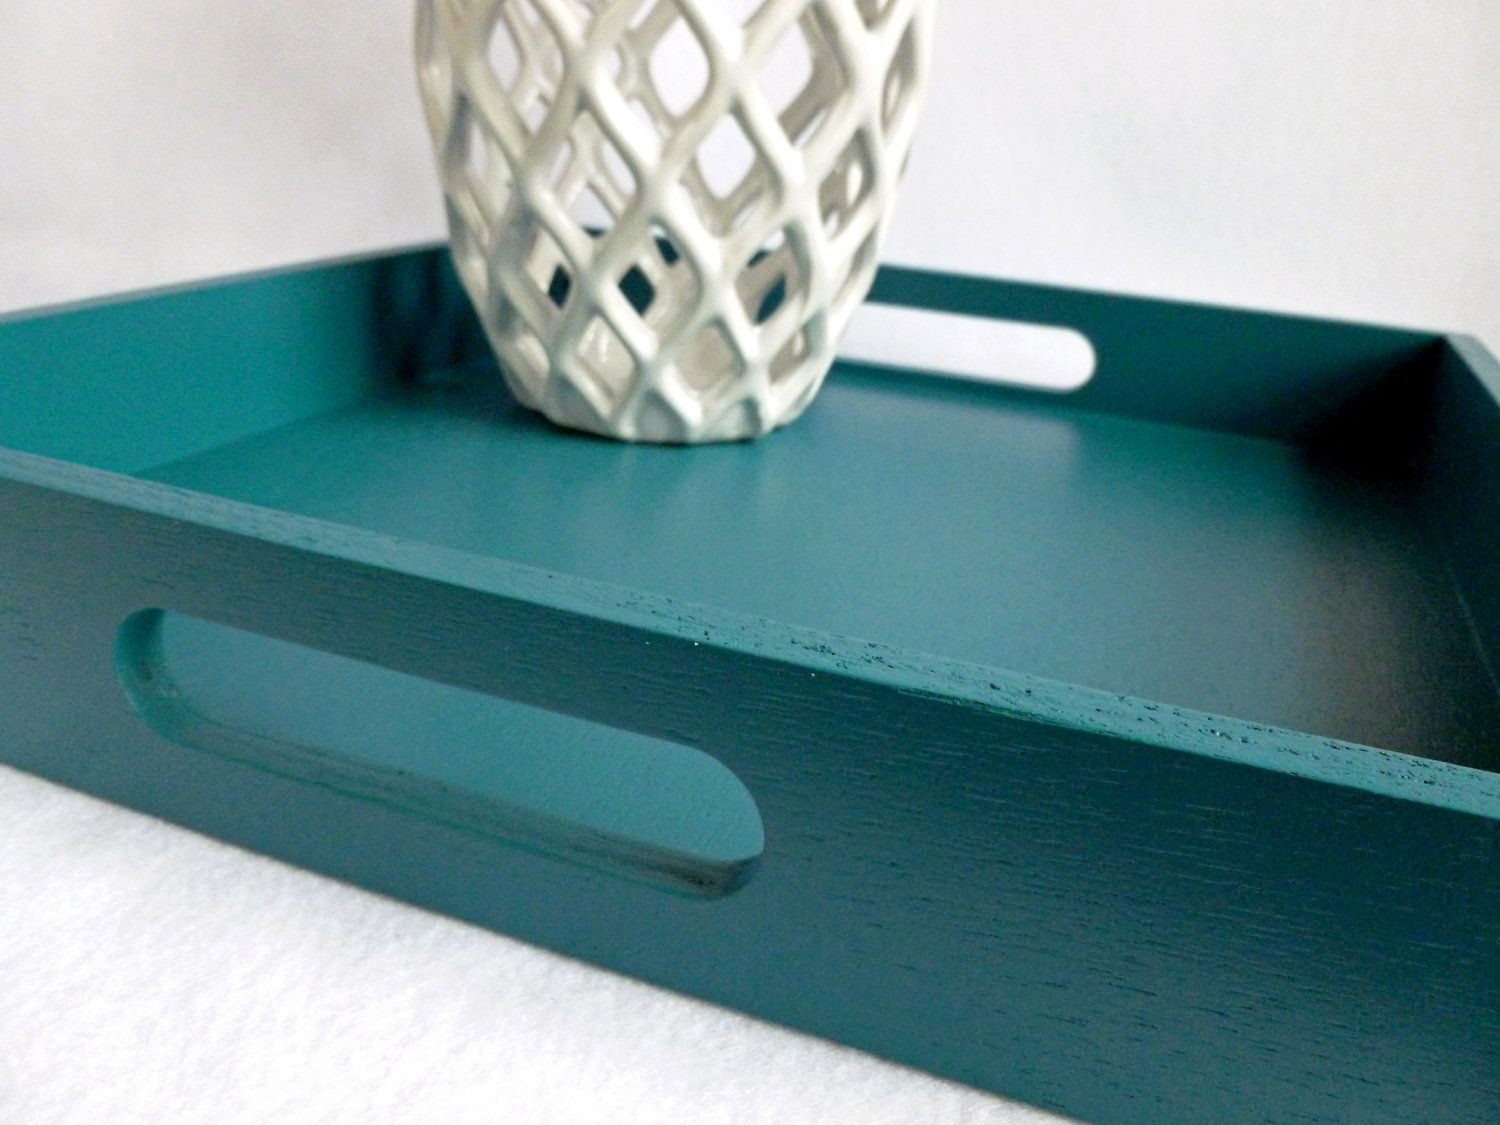 Ottoman Trays Home Decor Inspiration Teal Blue 16 X 16 Wood Square Serving Tray Home Decor For Coffee Inspiration Design